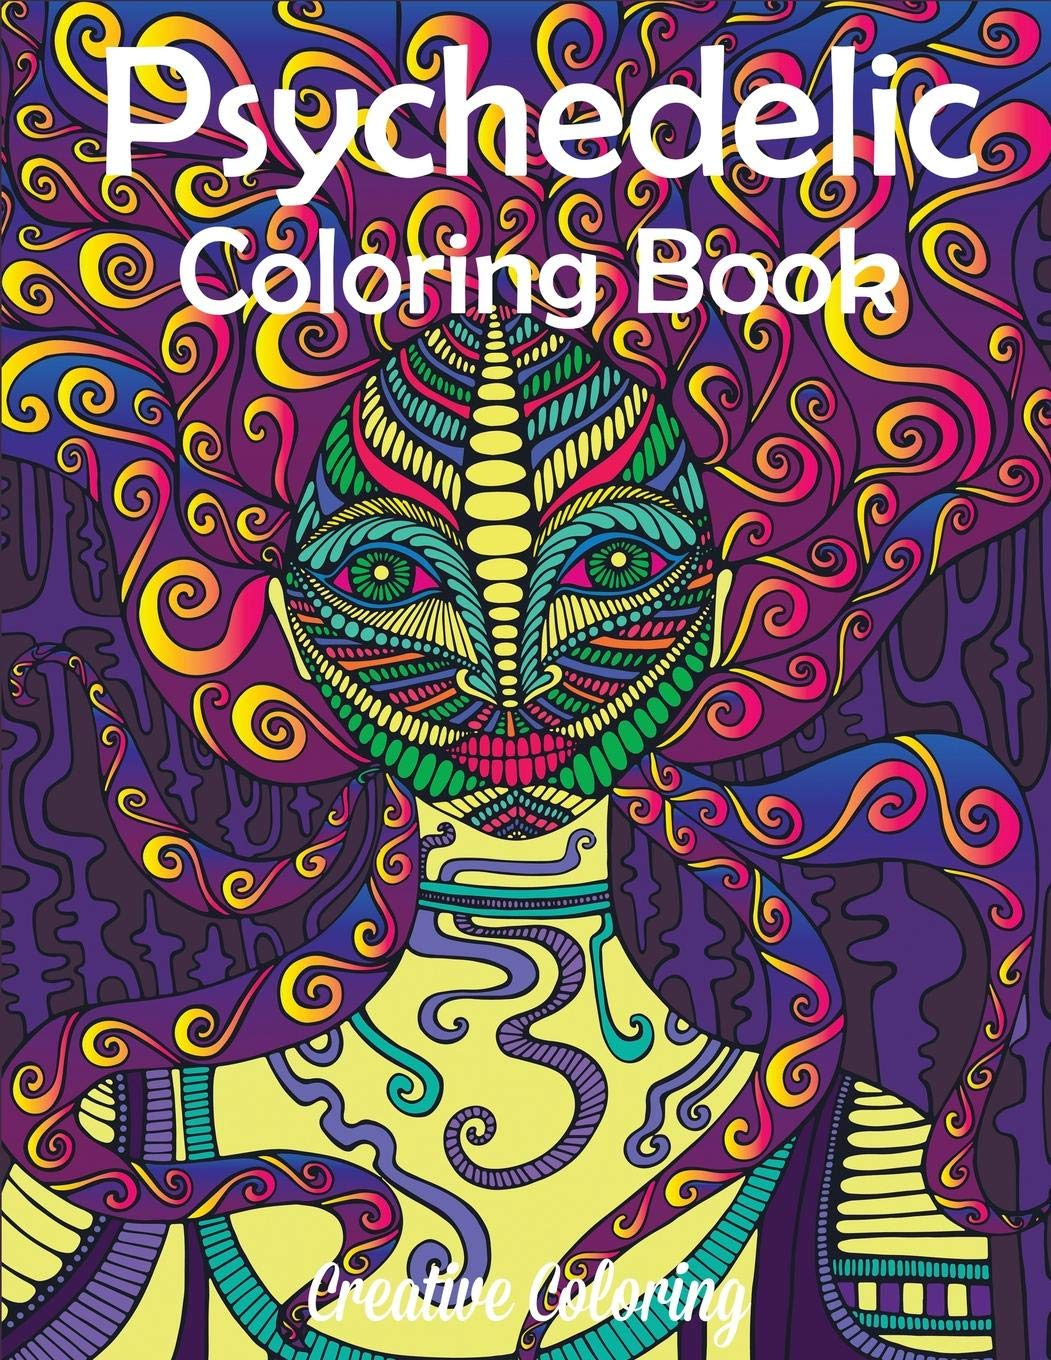 Amazon.com: Psychedelic Coloring Book: Adult Coloring Book ...